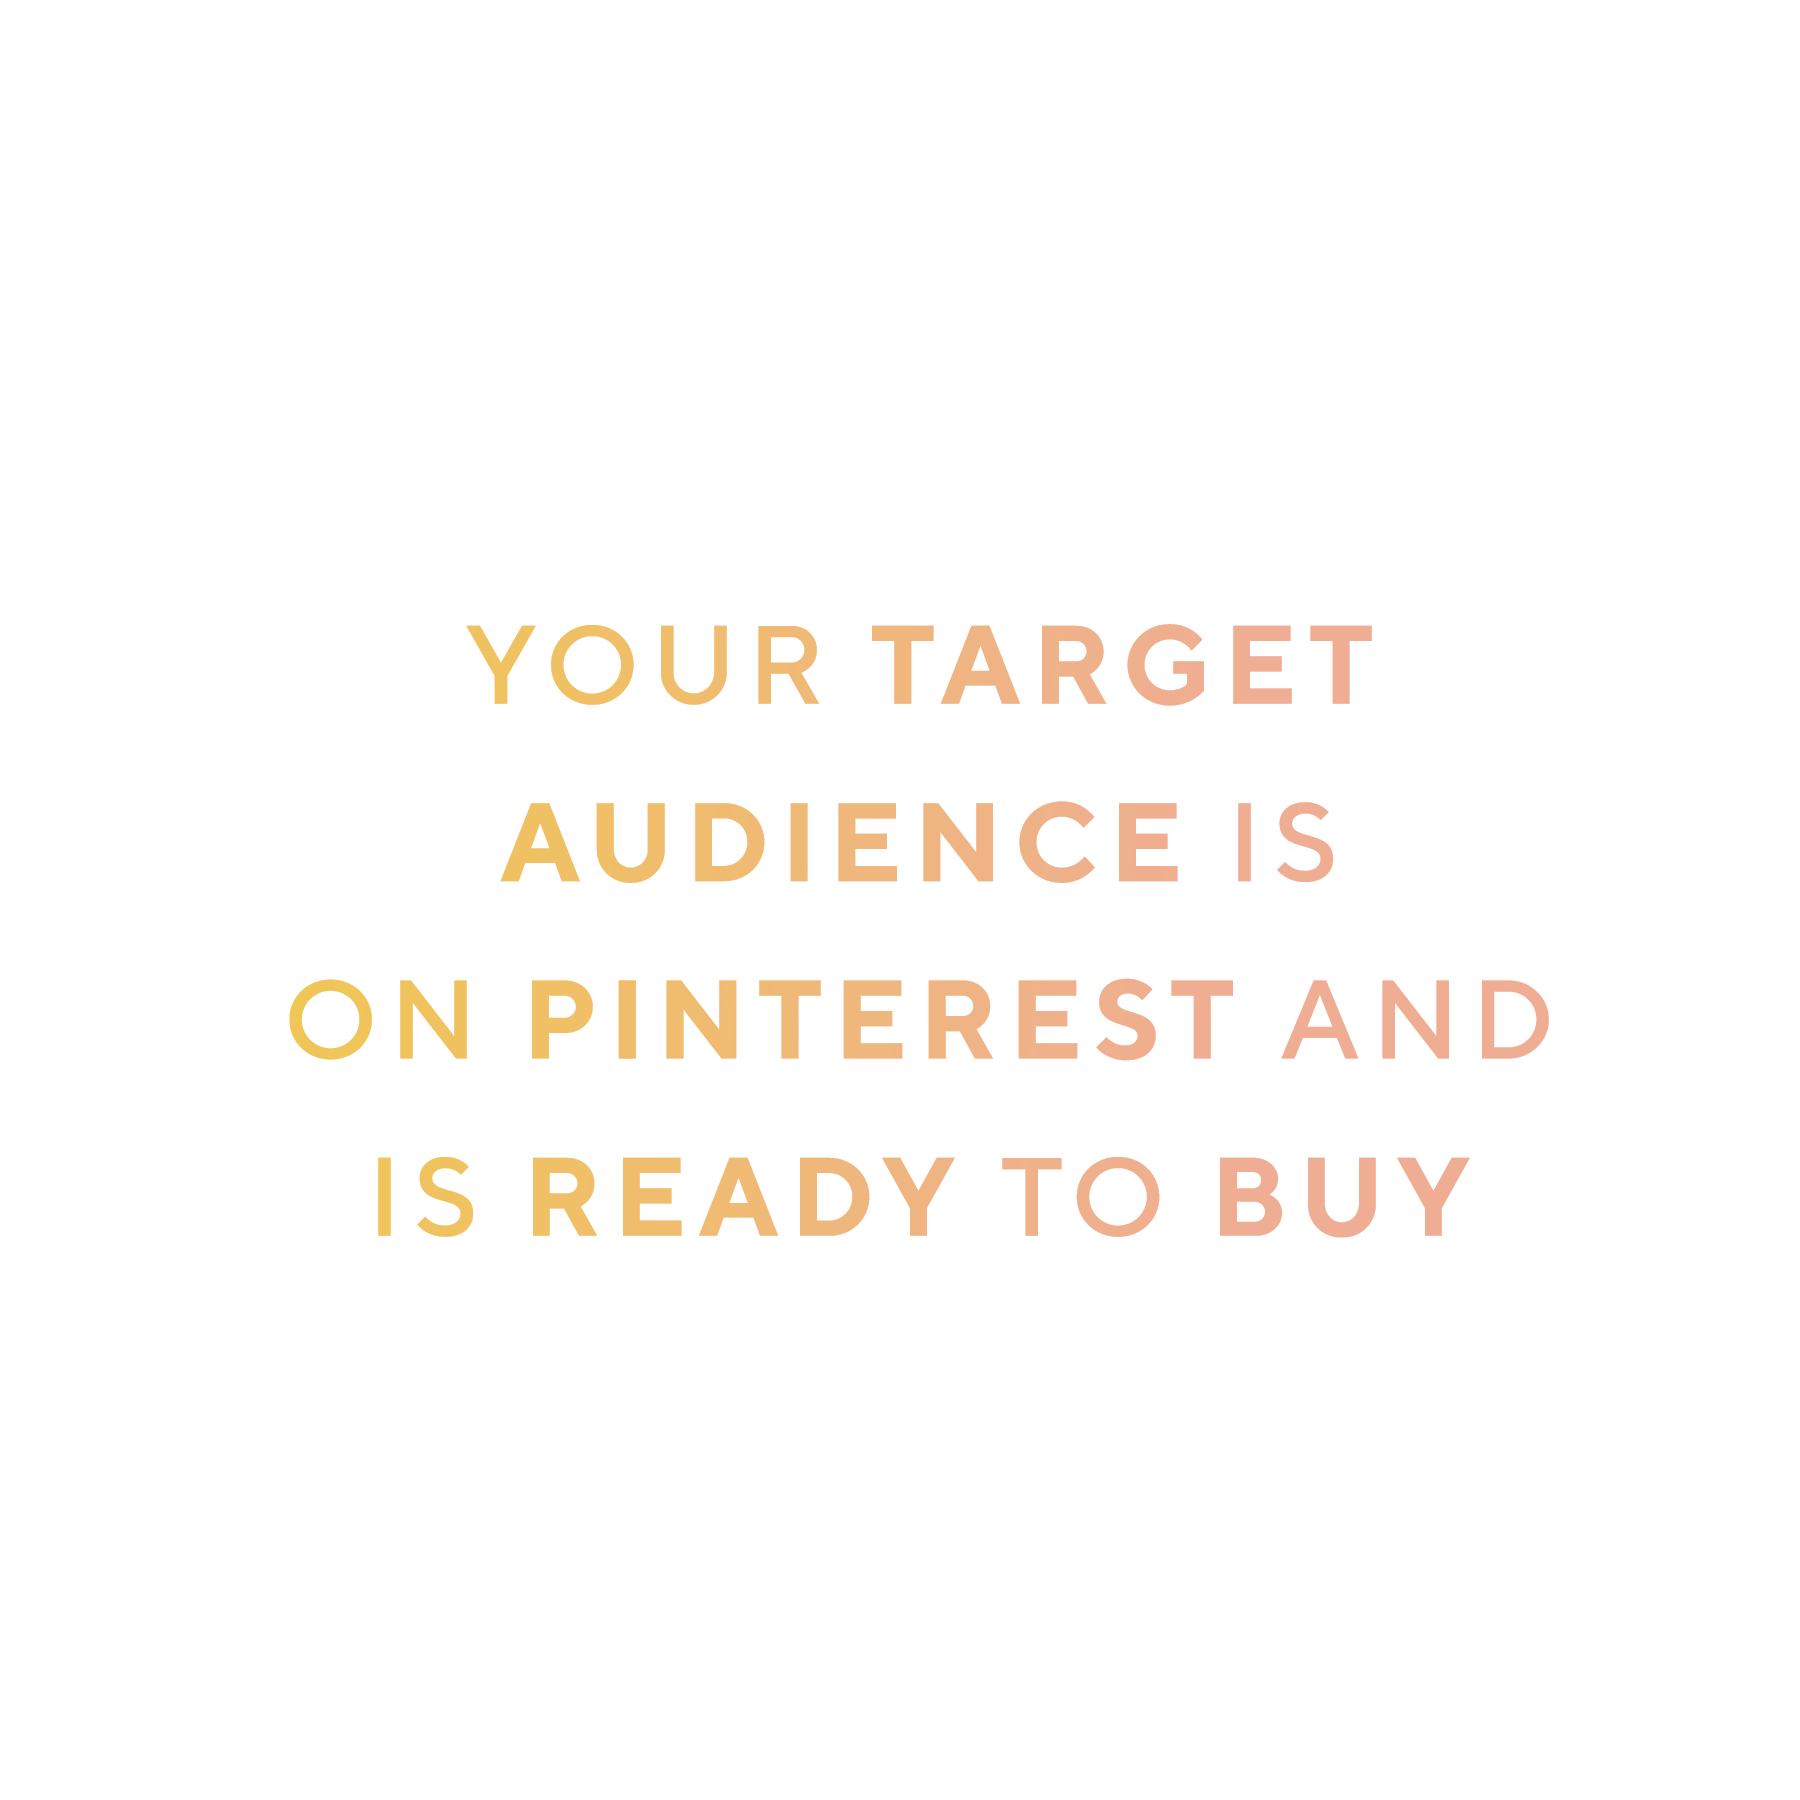 targetaudienceReadyToBuyonpinterest